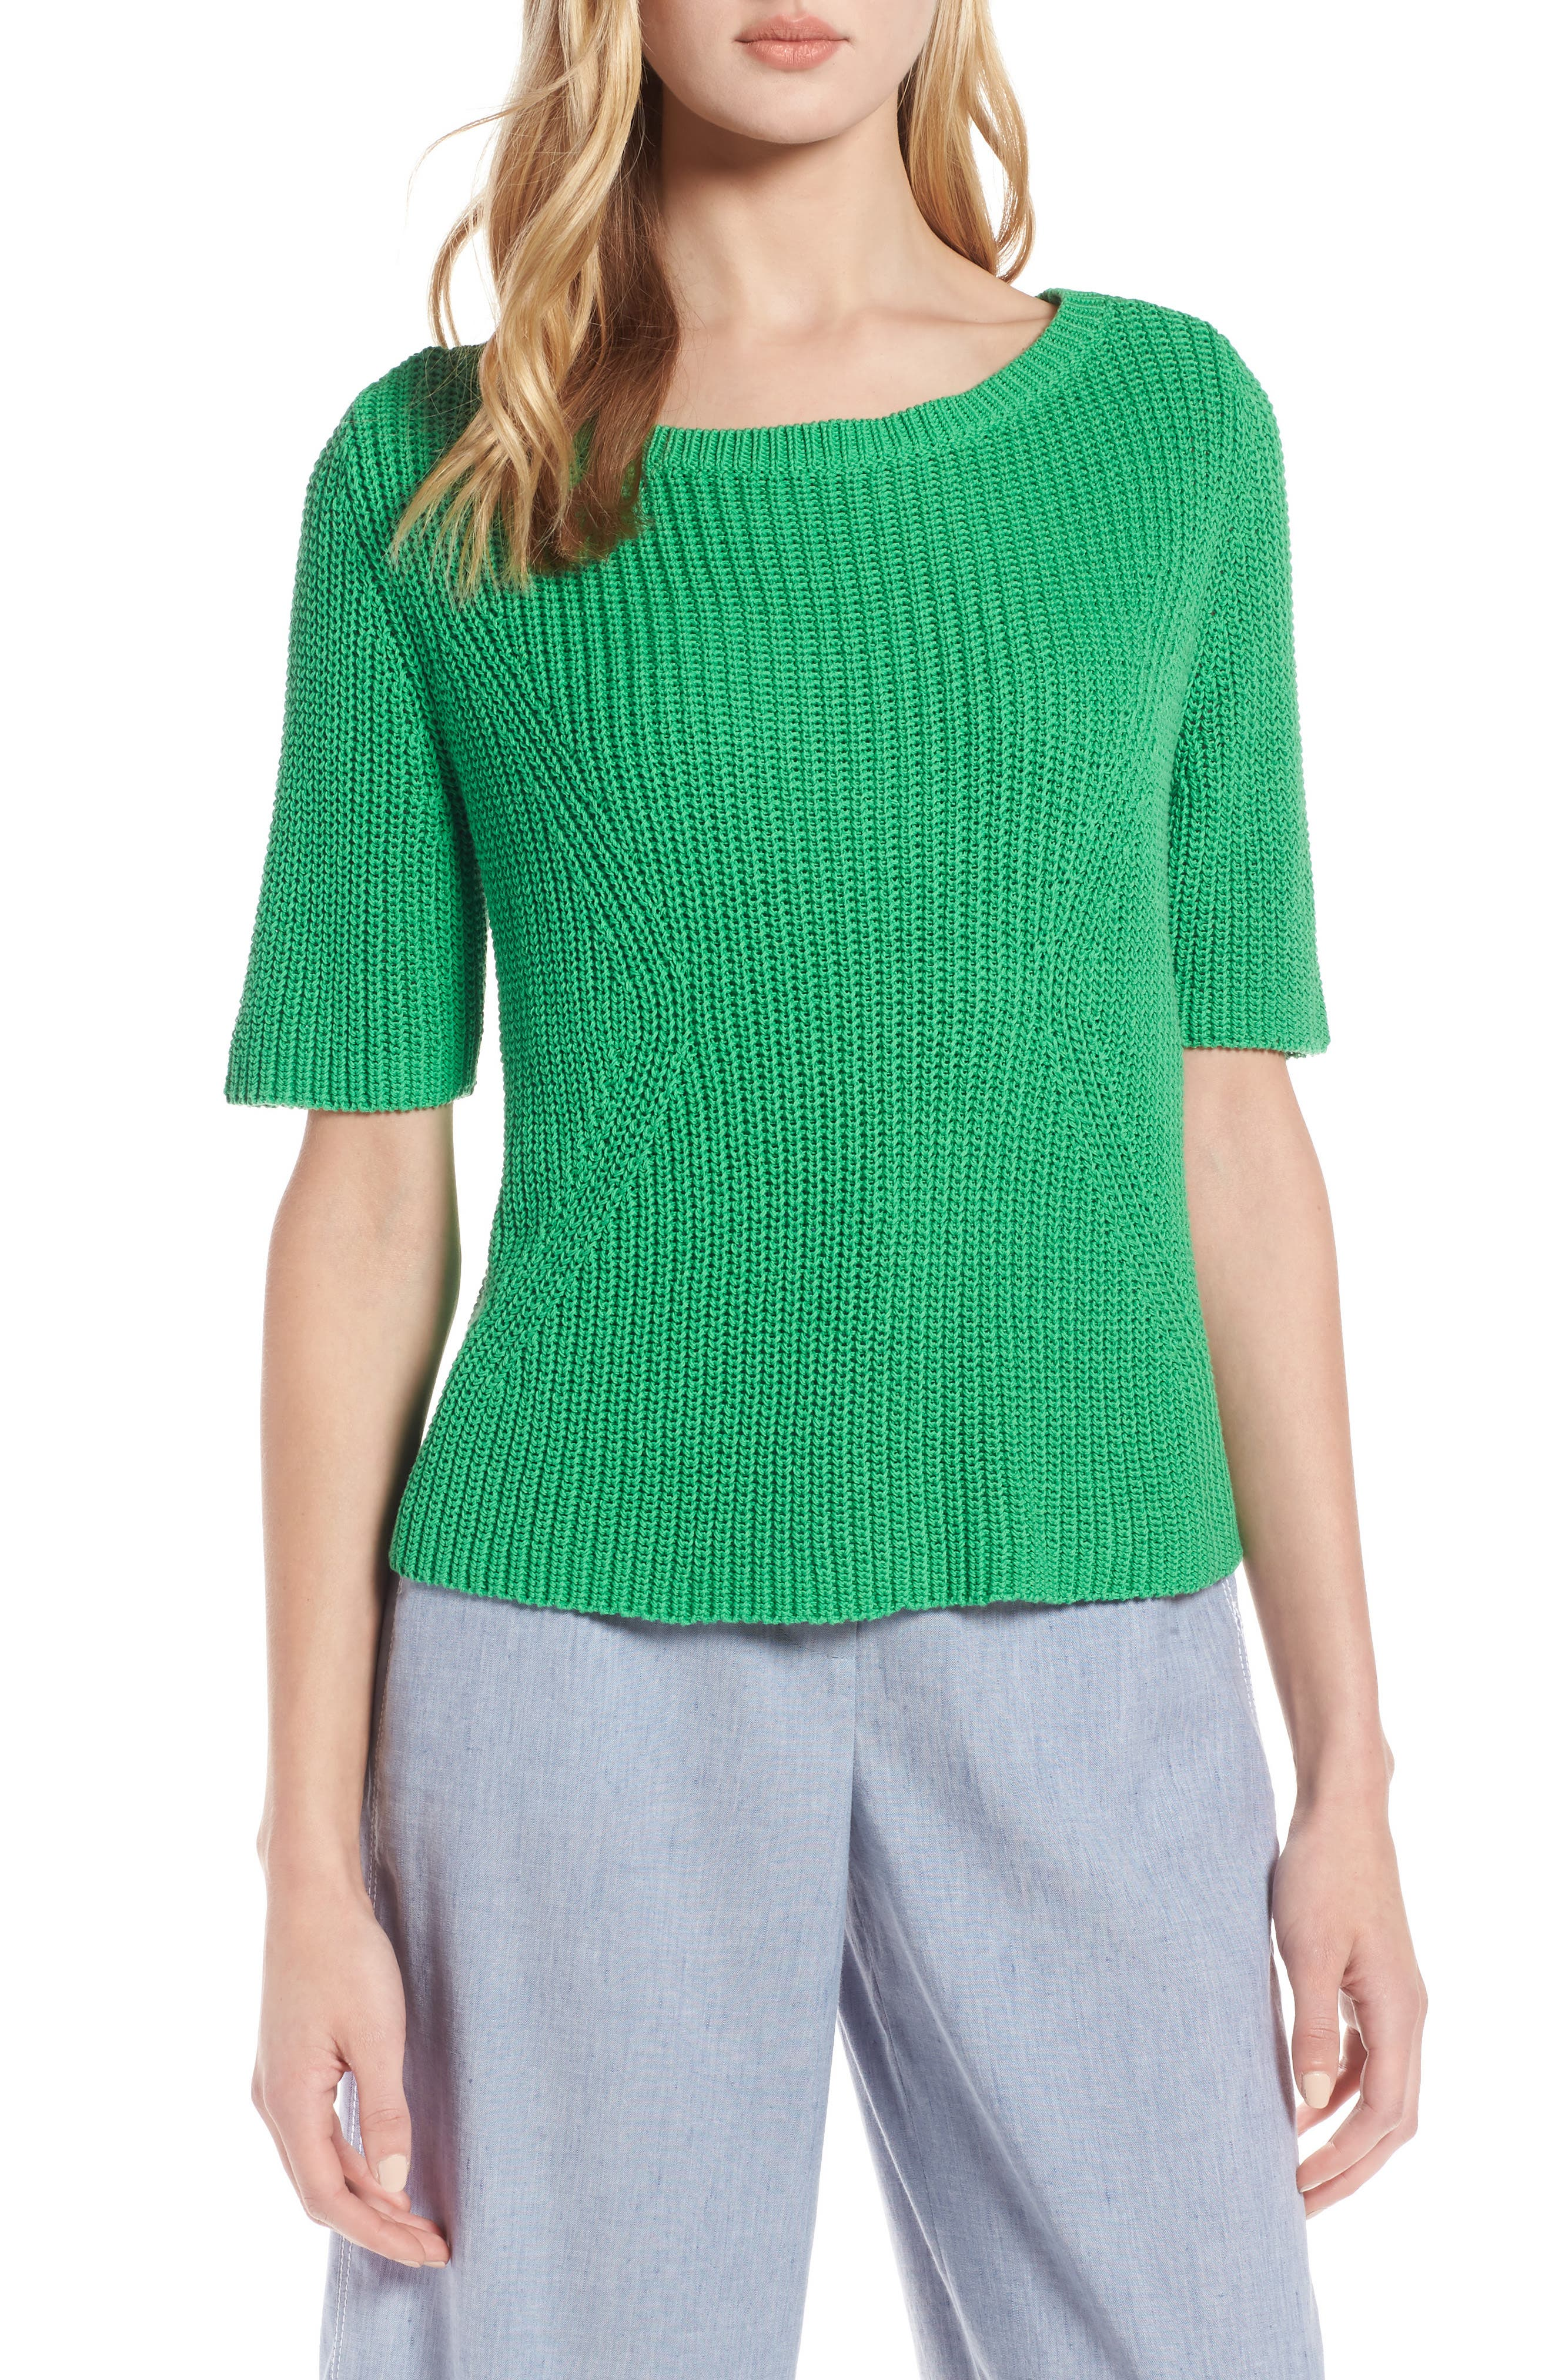 Shaker Stitch Cotton Sweater,                         Main,                         color, 330